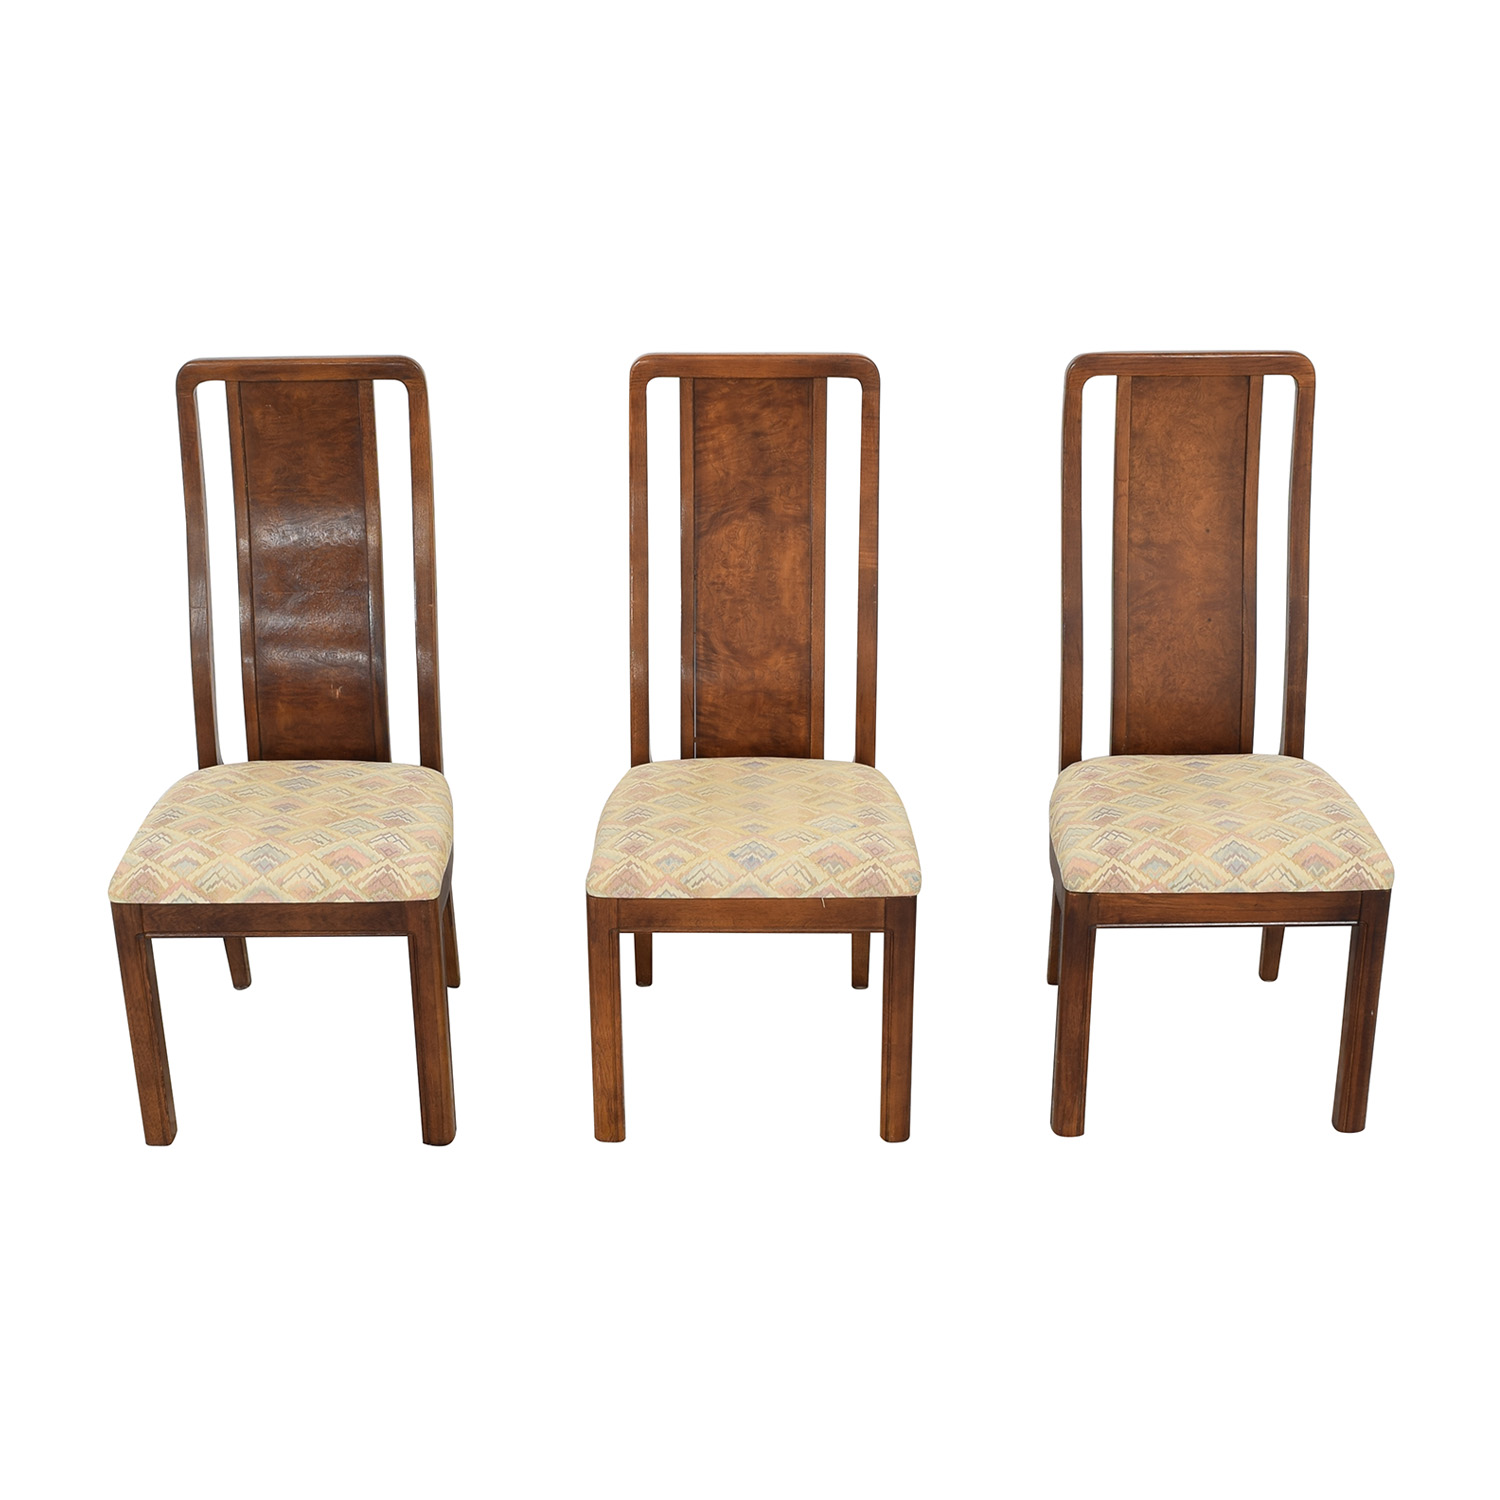 buy Thomasville Vintage Burled Dining Chairs Thomasville Dining Chairs